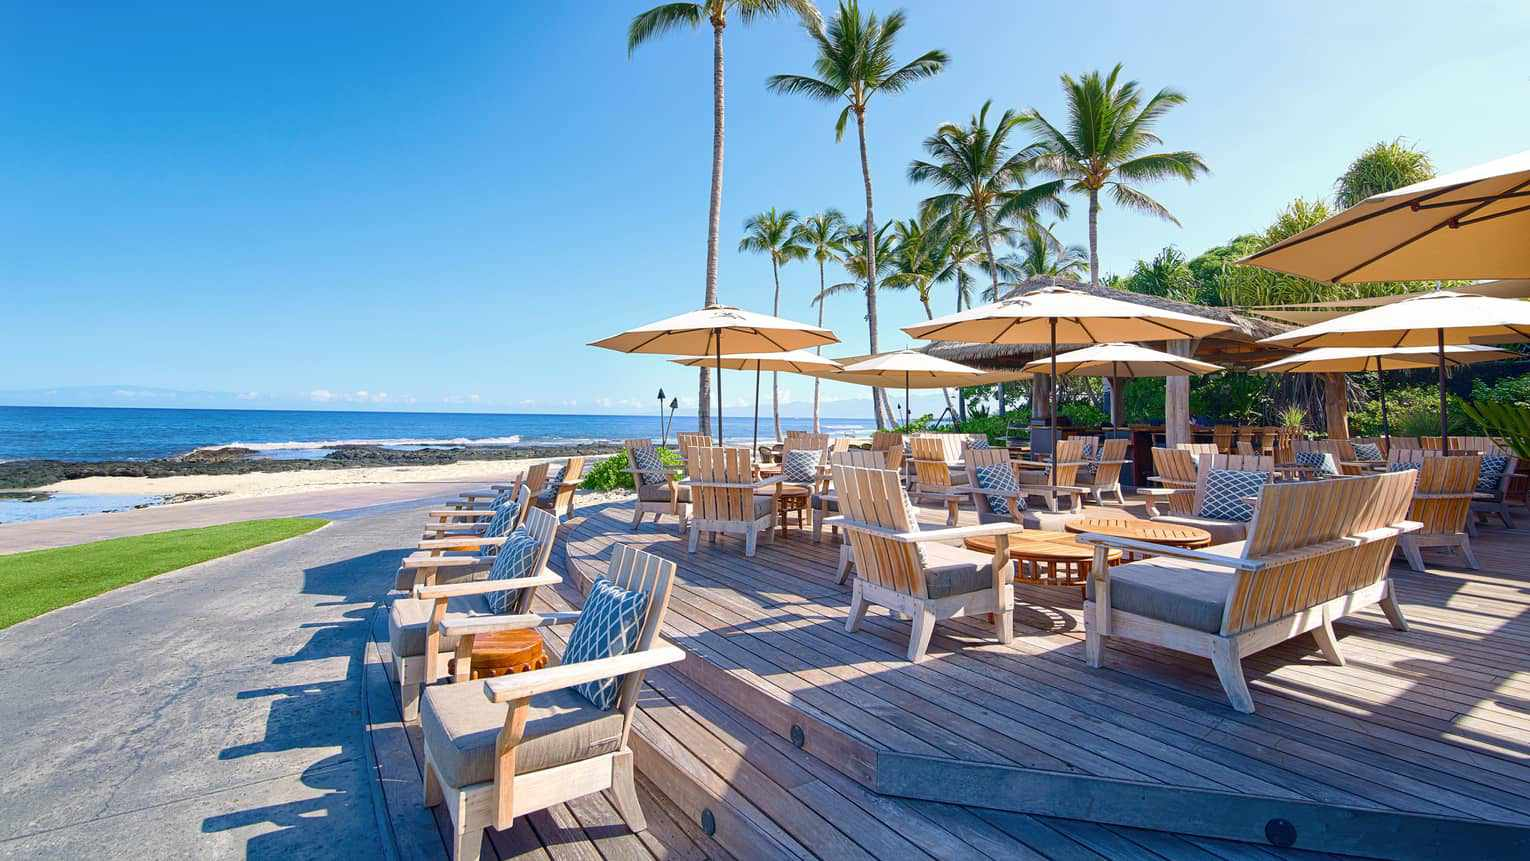 outside dining overlooking the ocean